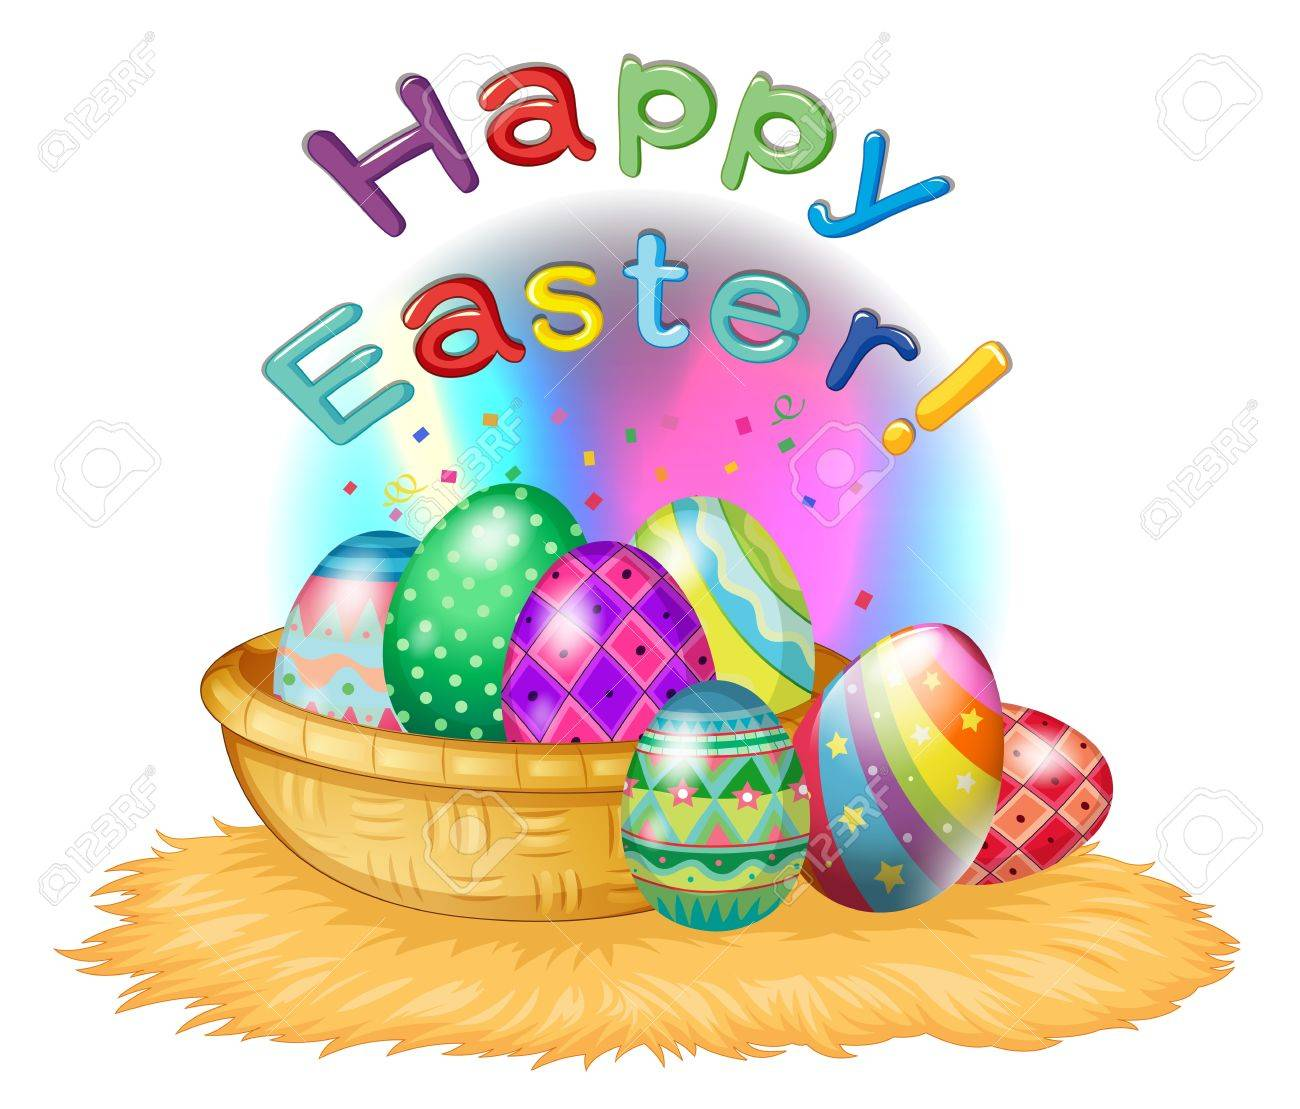 Illustration of a happy easter greeting with a basket full of eggs on a white background Stock Vector - 17897221